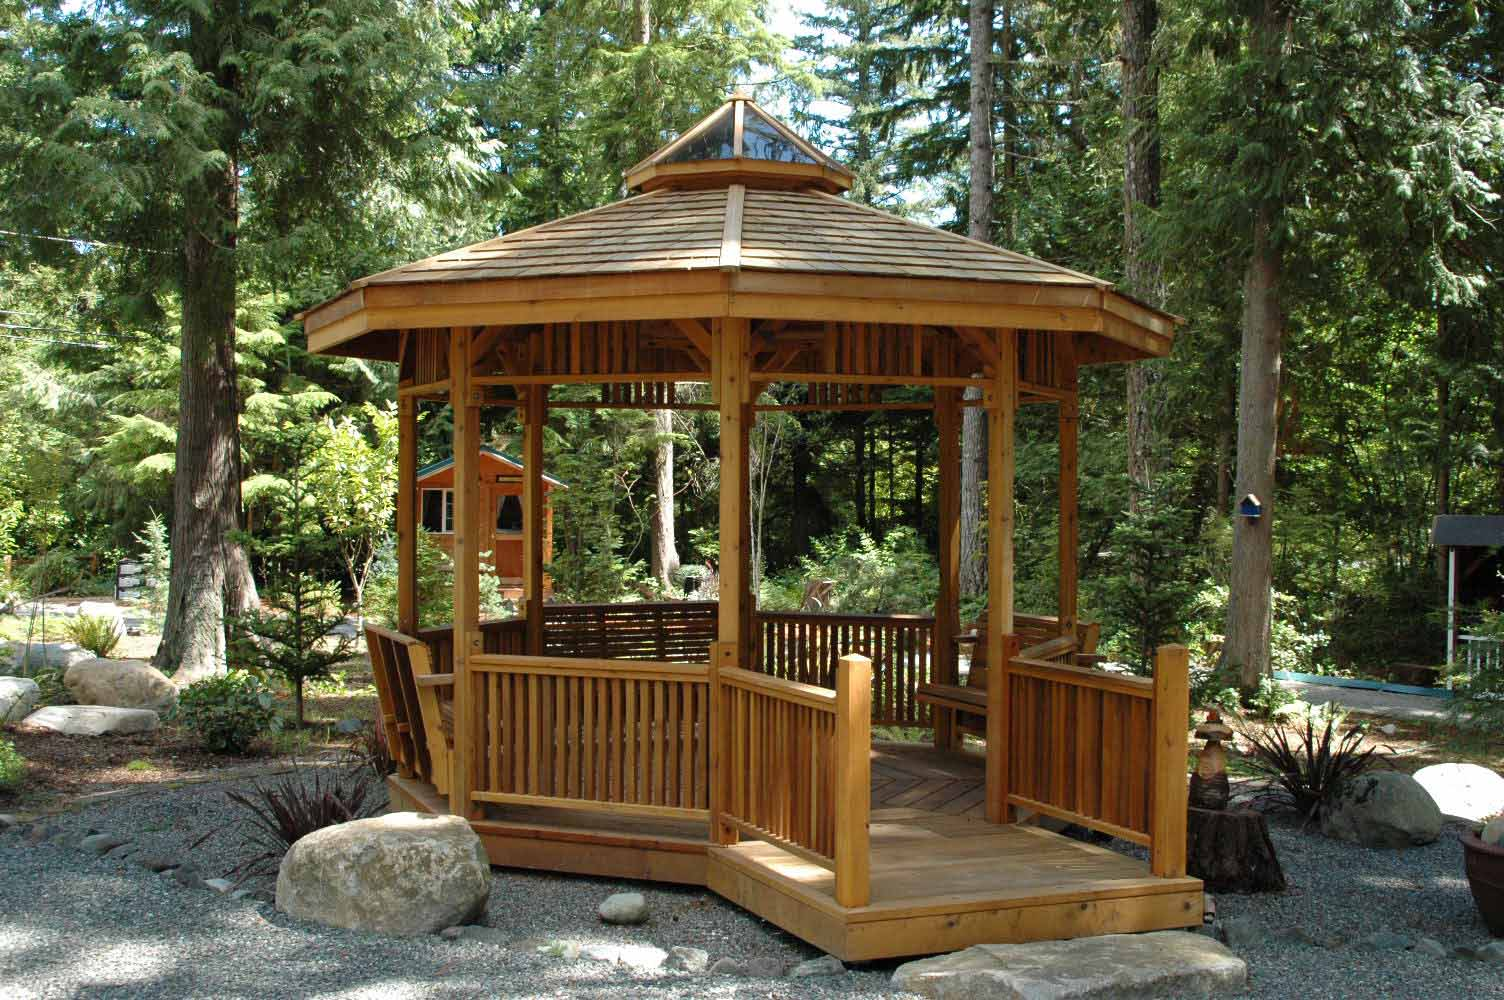 Garden Design Ideas With Gazebo : Gazebo